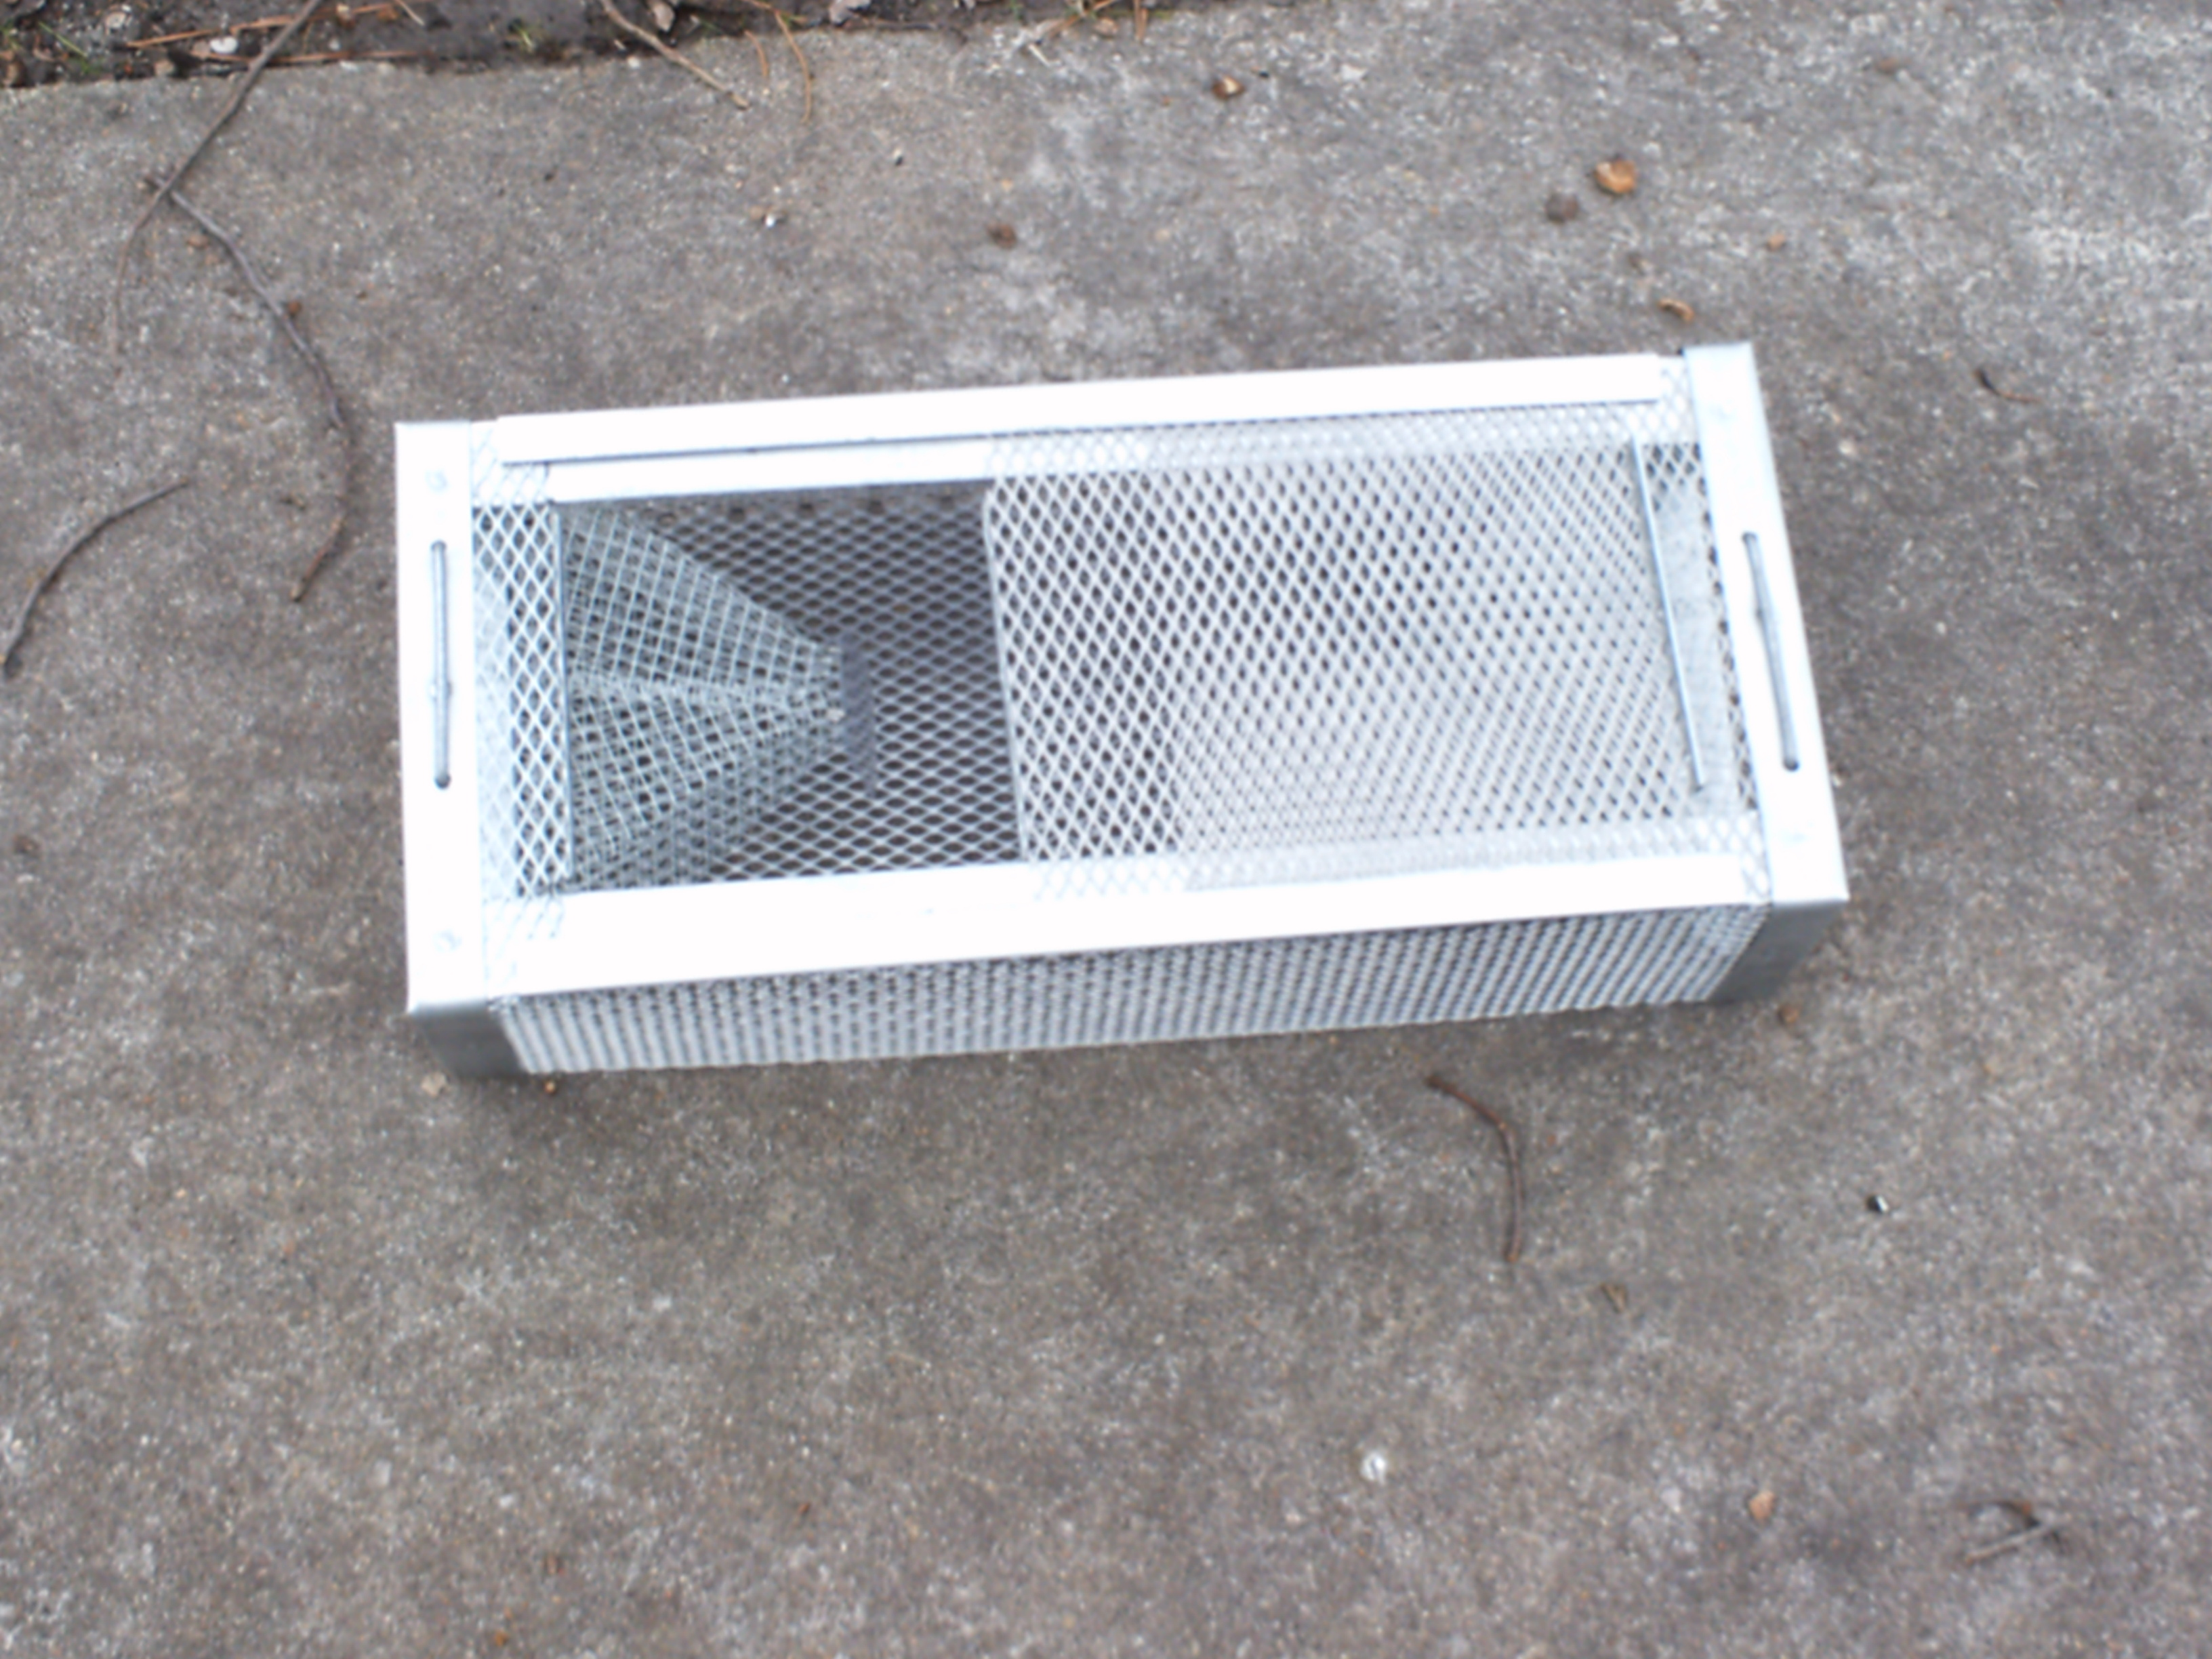 Snake traps bugs amp turf 4 less services inc blog